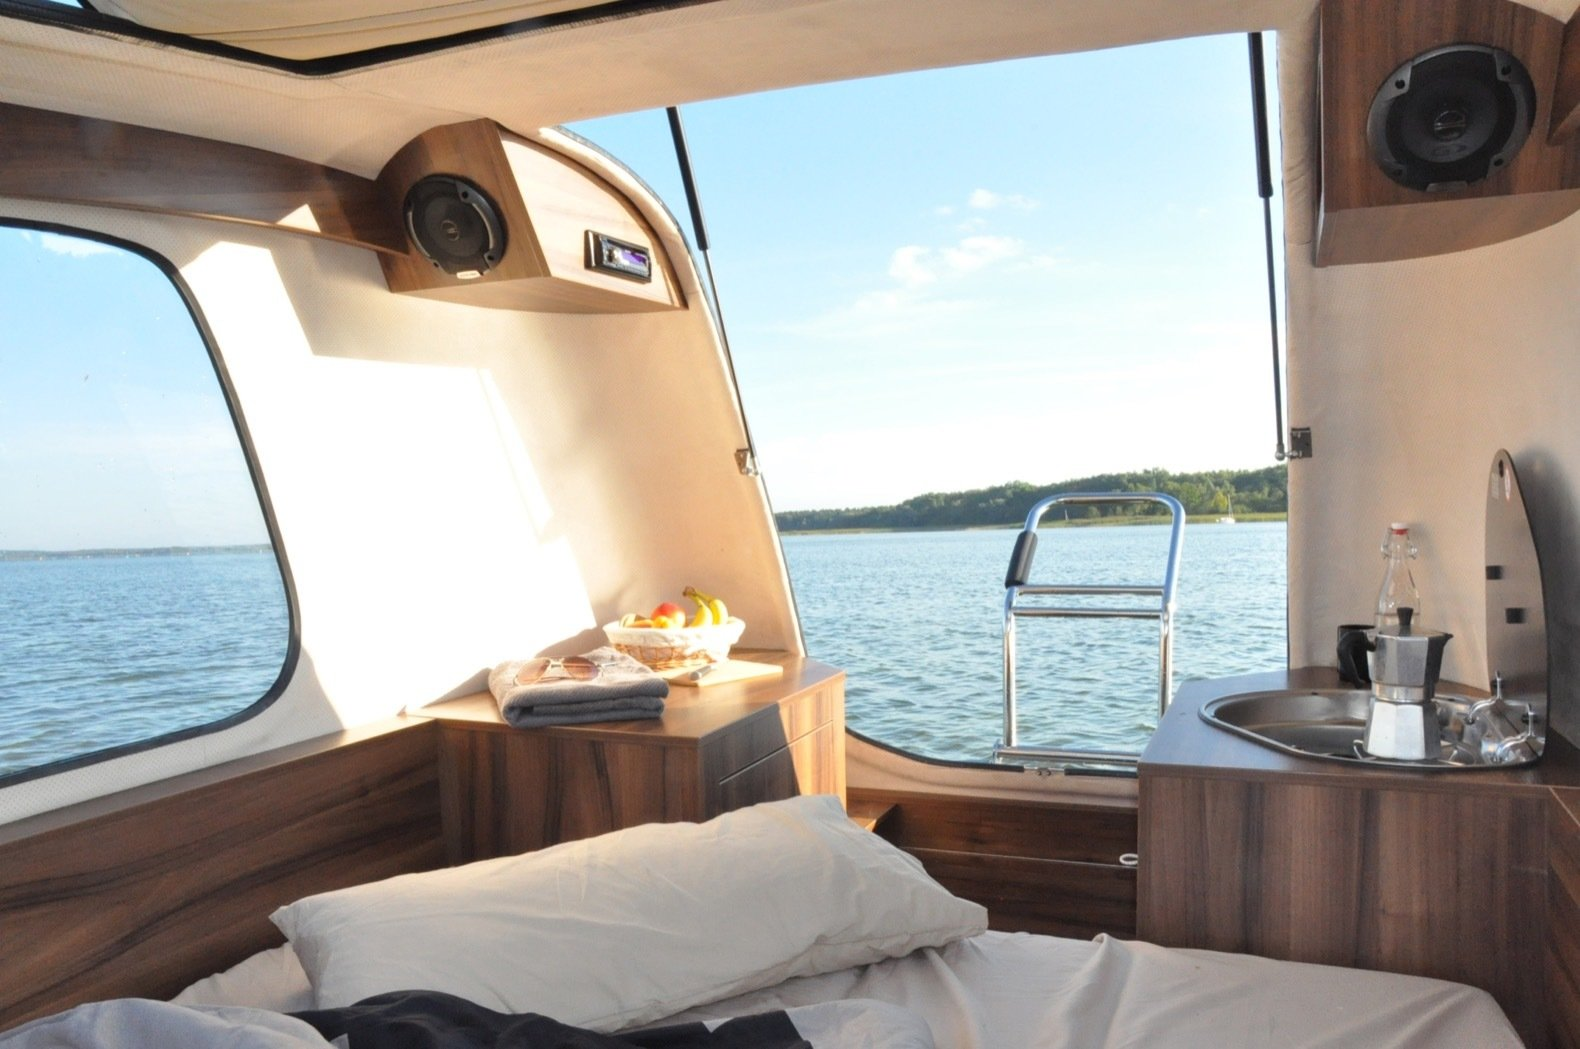 Bedroom and Bed Each Sealander can be customized to the user's preference, from add-on speakers to an on-board shower and toilet.  Photo 3 of 8 in This Amphibious Tiny Camper Tackles Land and Sea For Just $20K